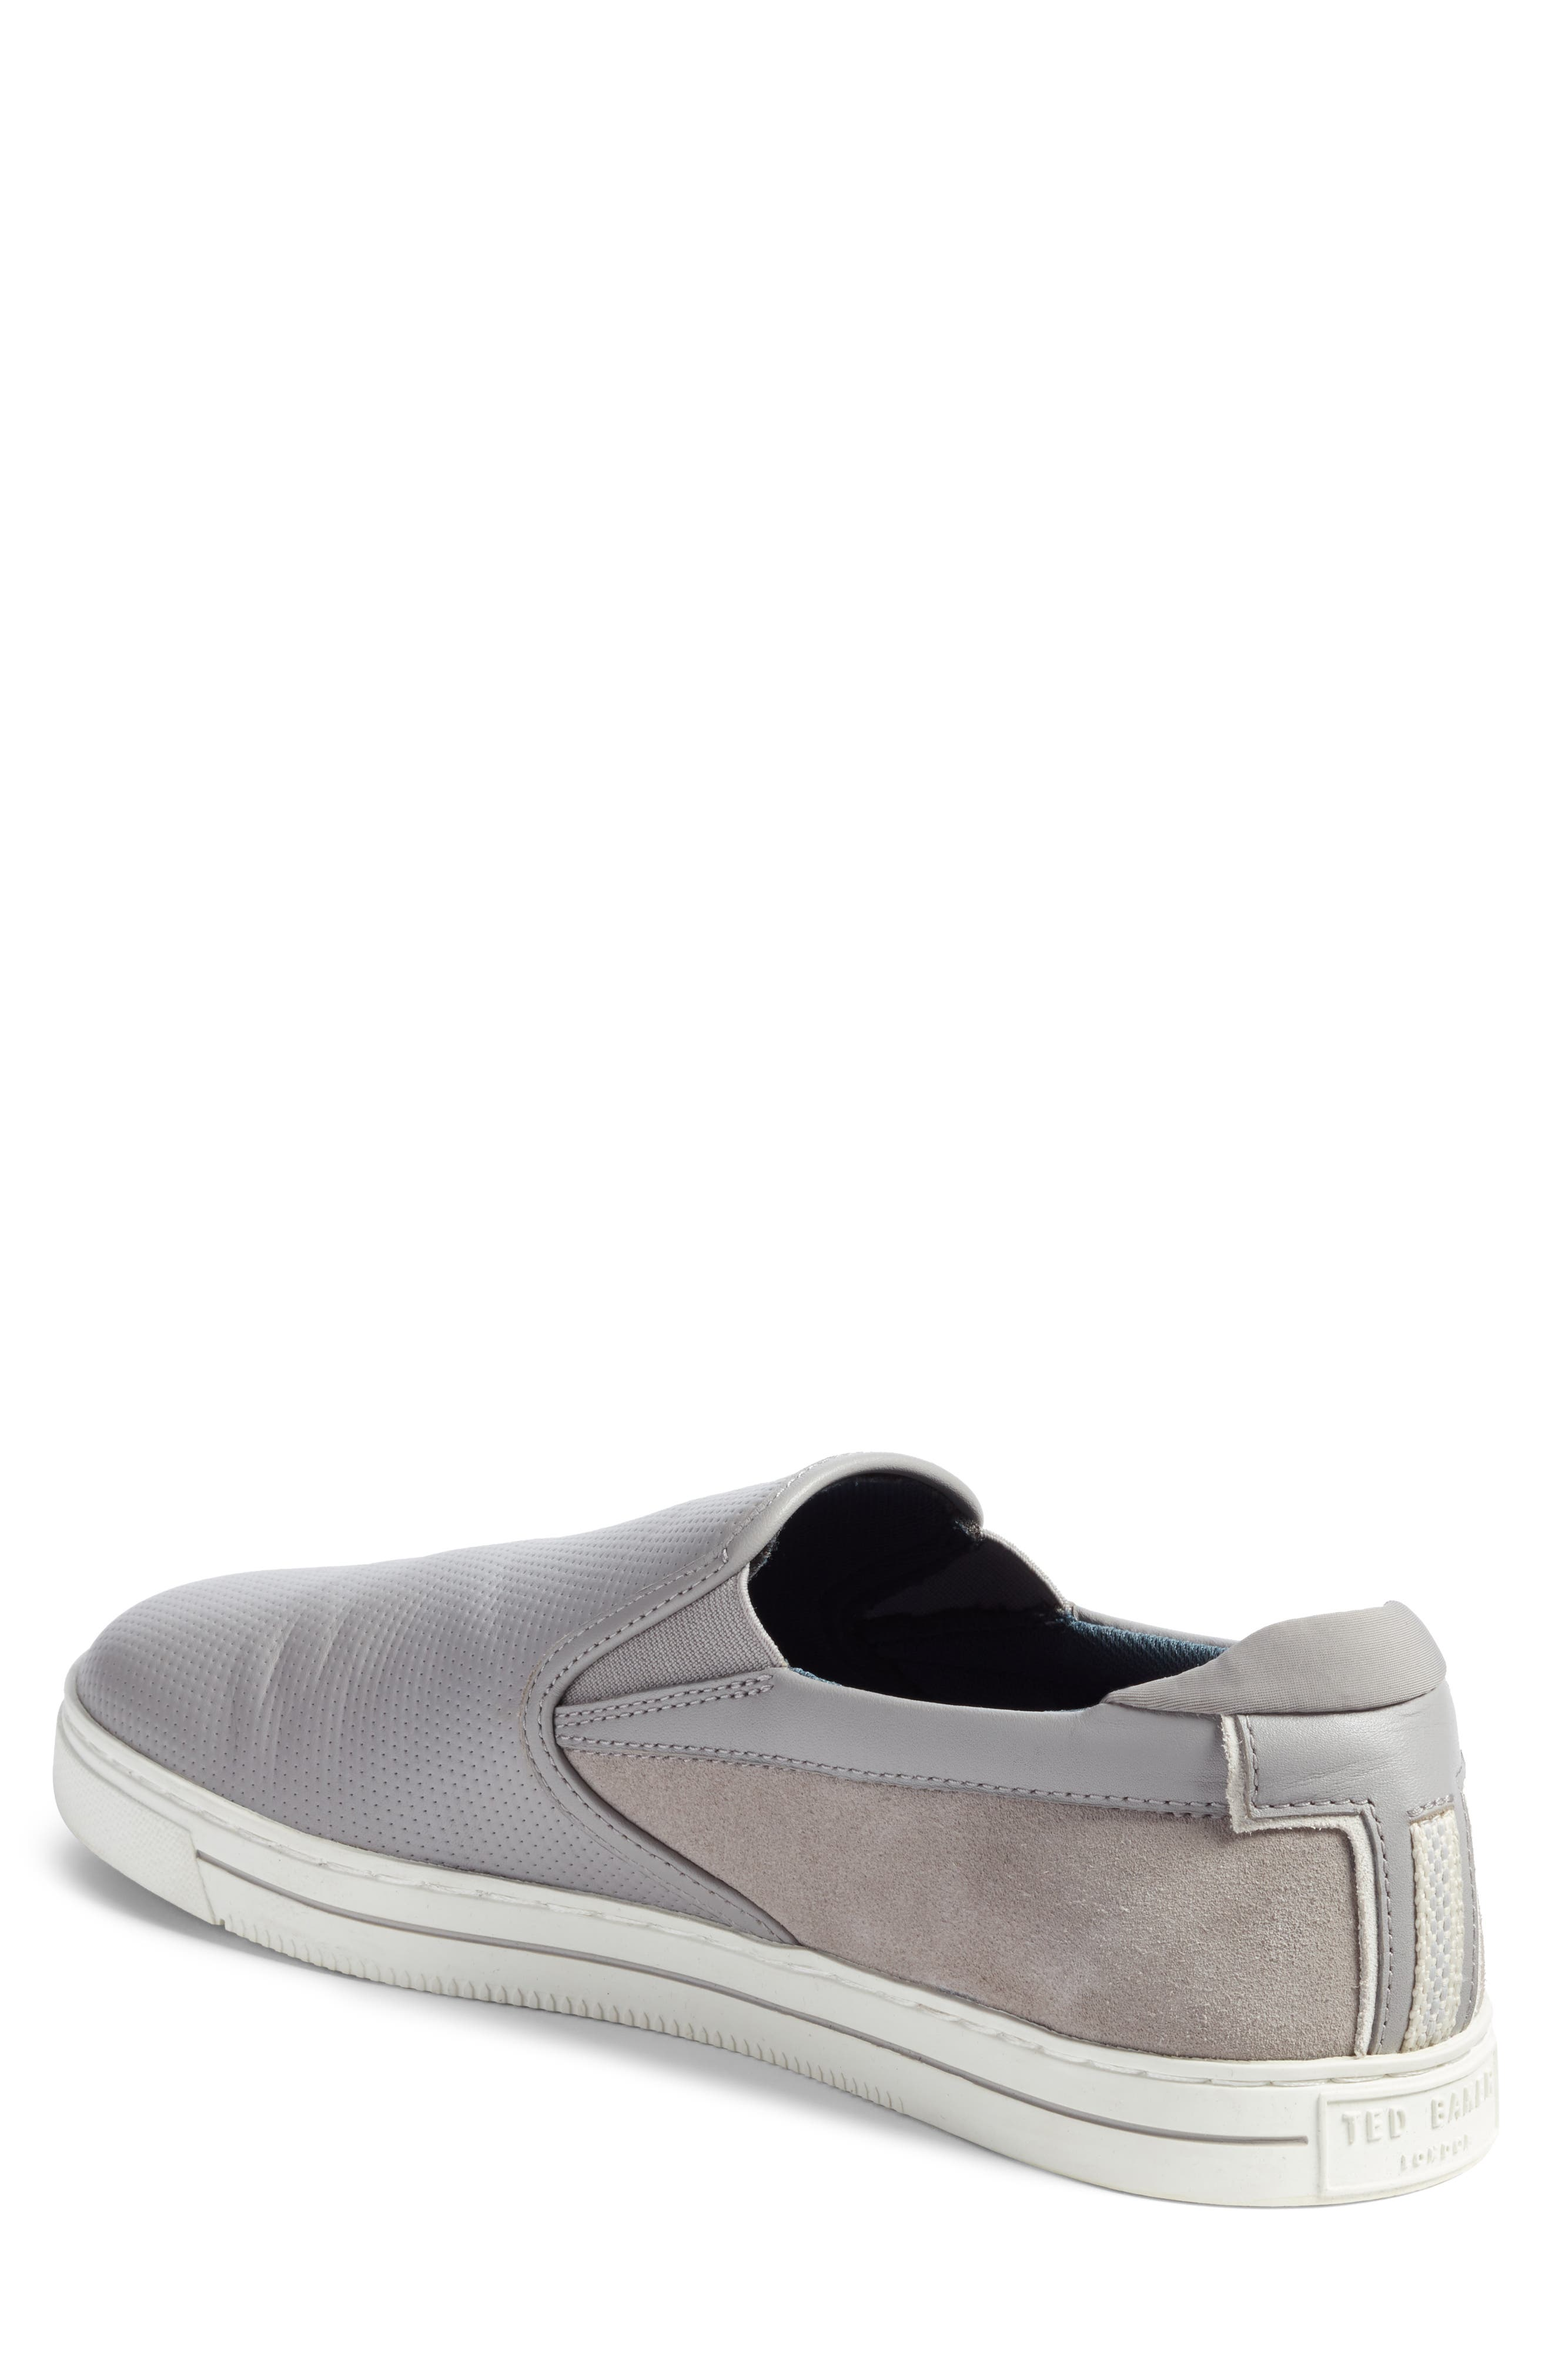 Patroy Perforated Slip-On Sneaker,                             Alternate thumbnail 2, color,                             LIGHT GREY LEATHER